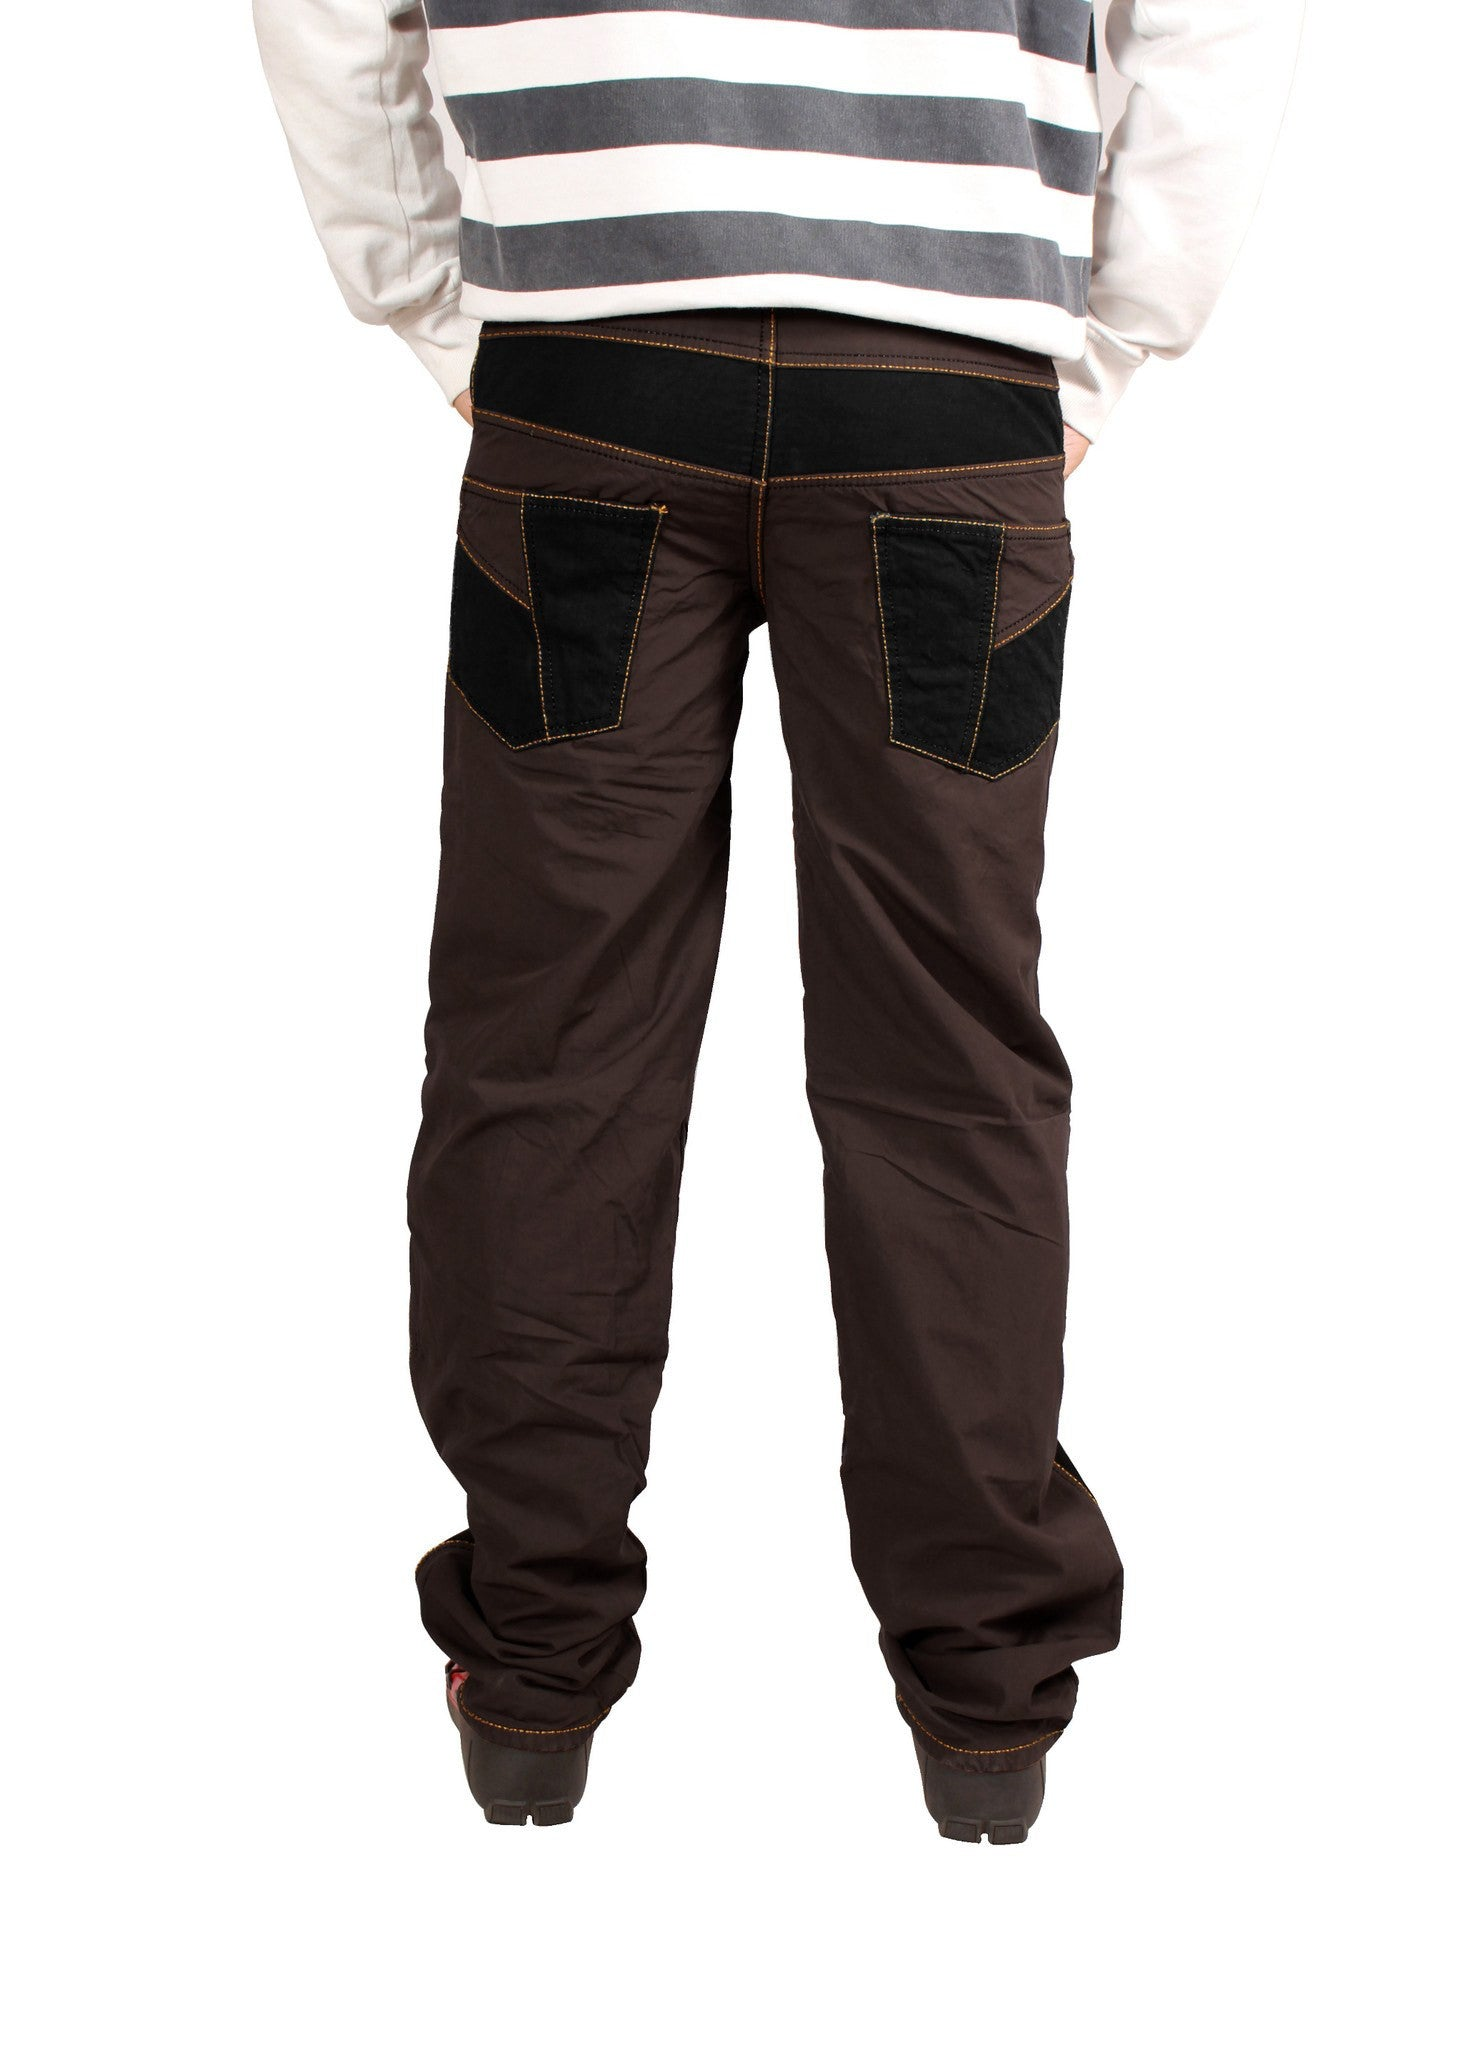 Roasted Coffee Brown Bonded Trouser - Über Urban Trouser